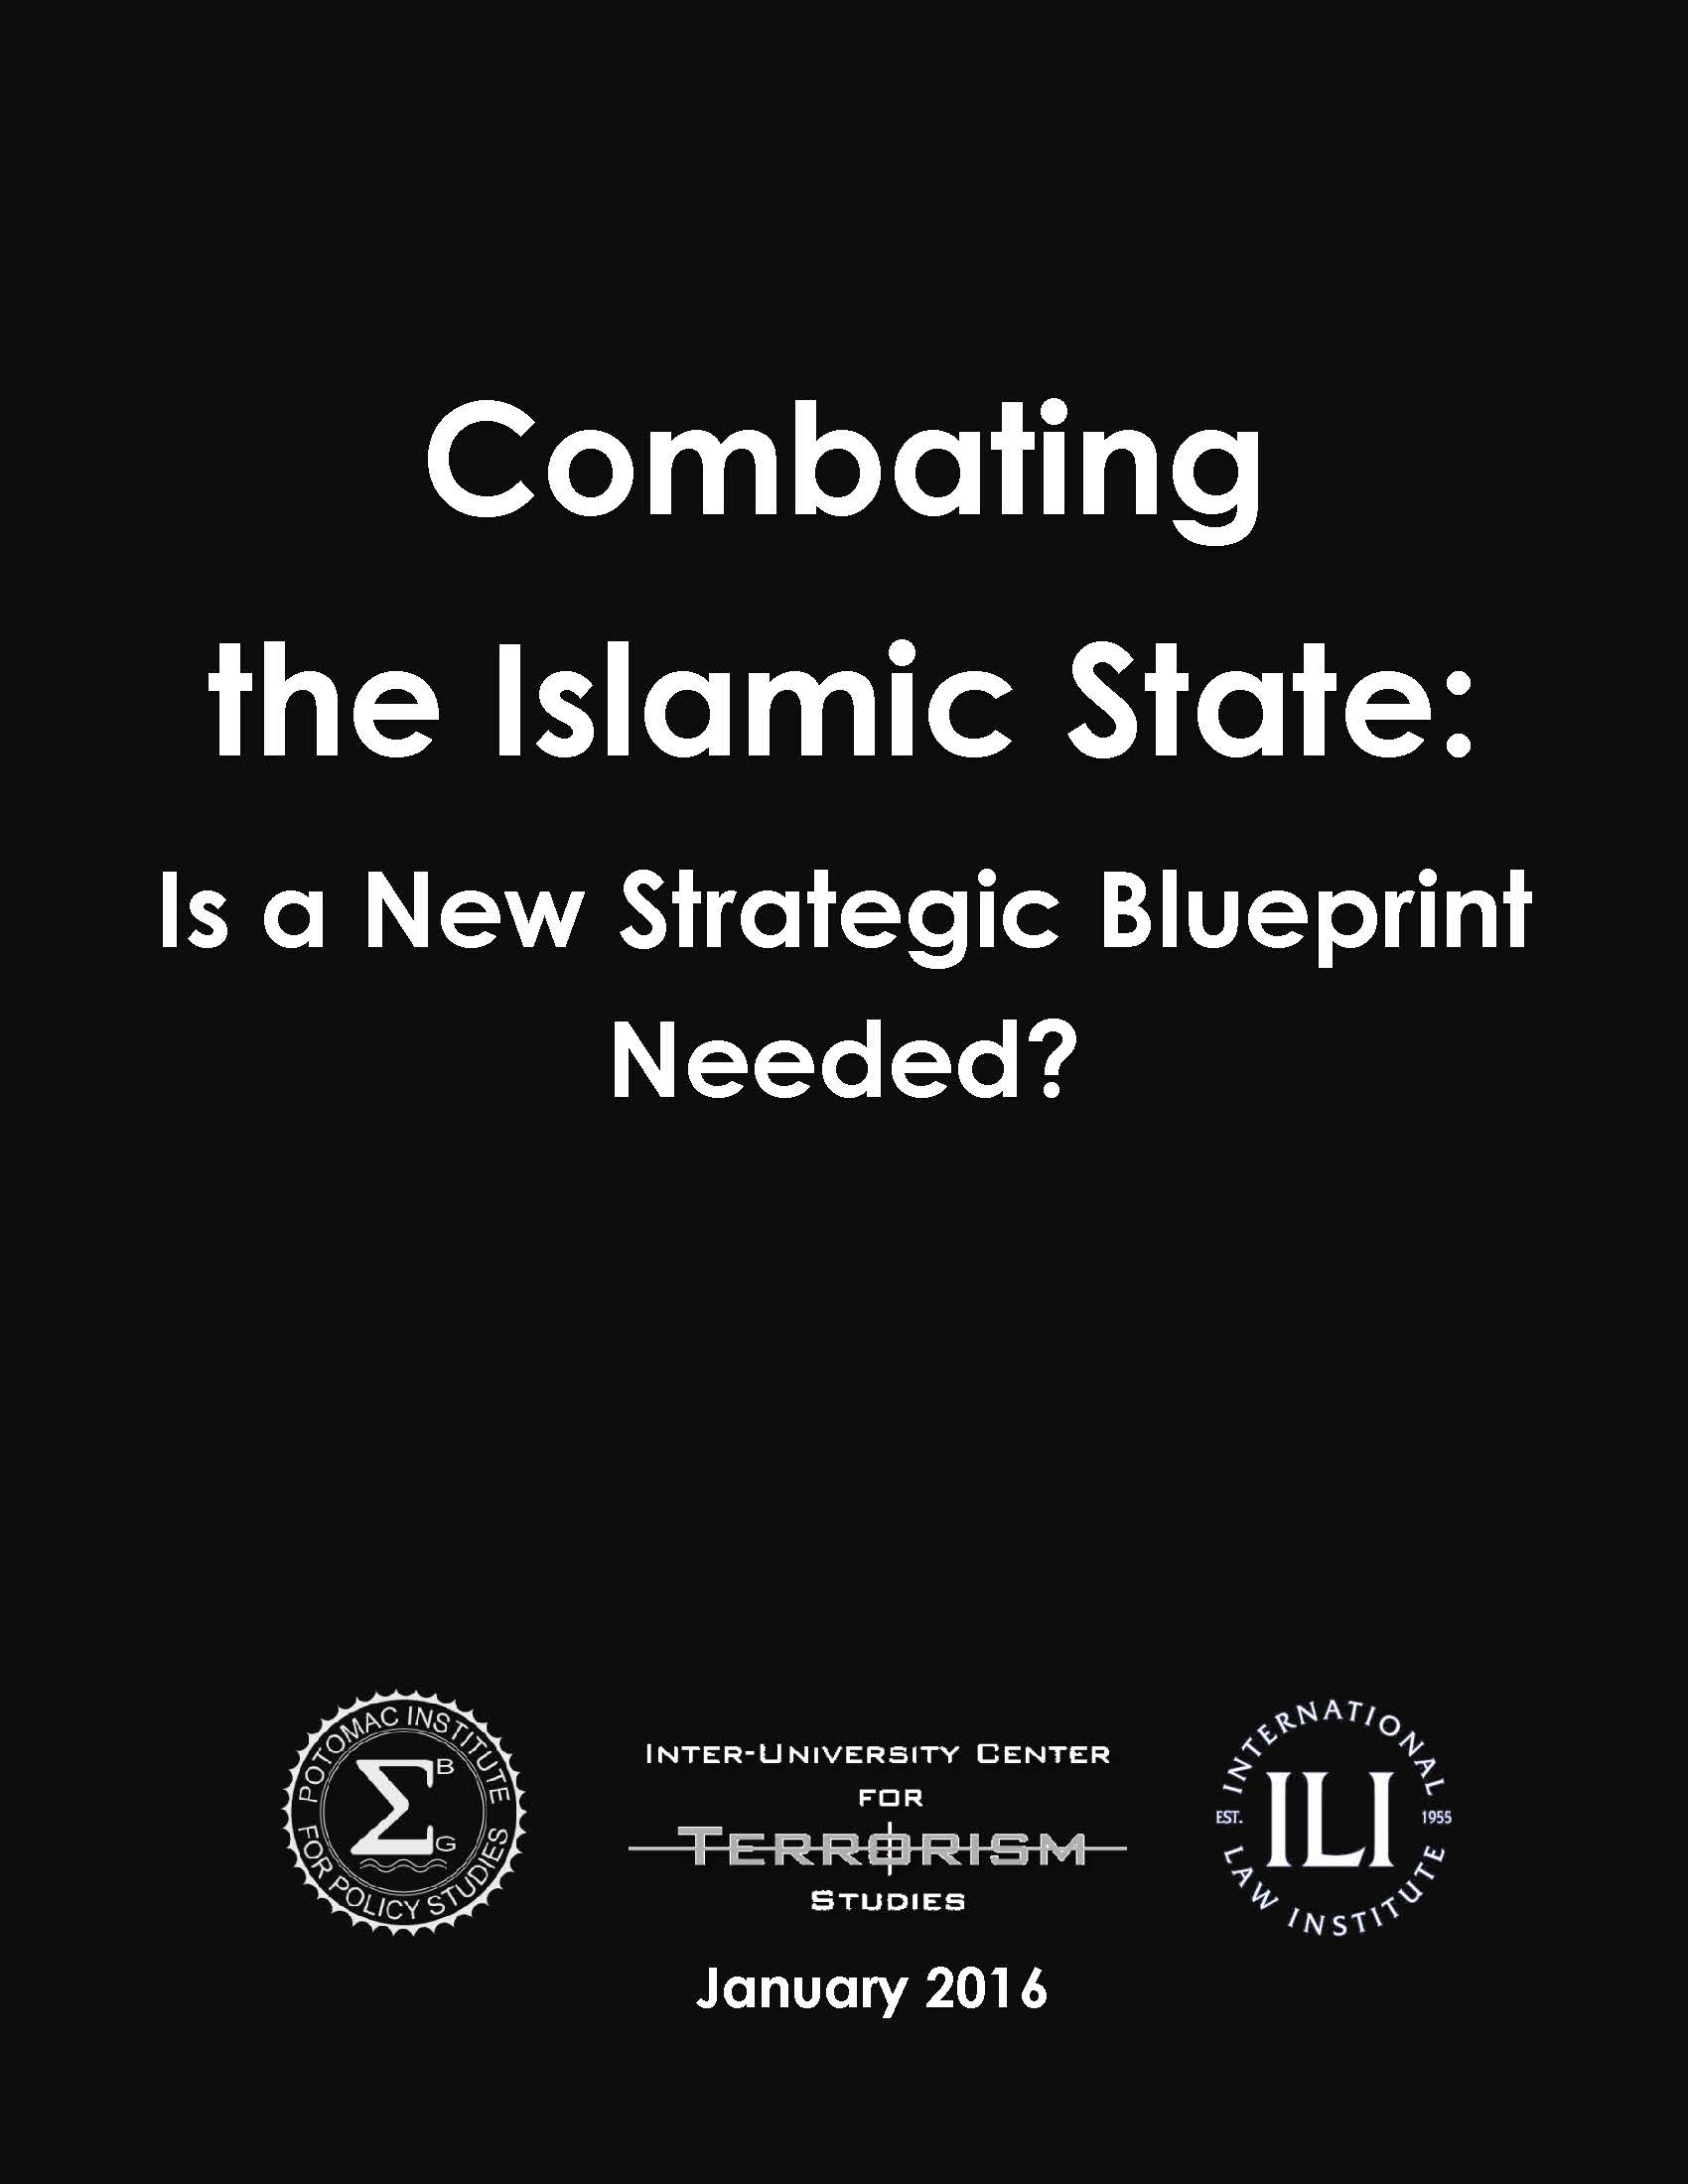 Combating the Islamic State: Is a New Strategic Blueprint Needed?